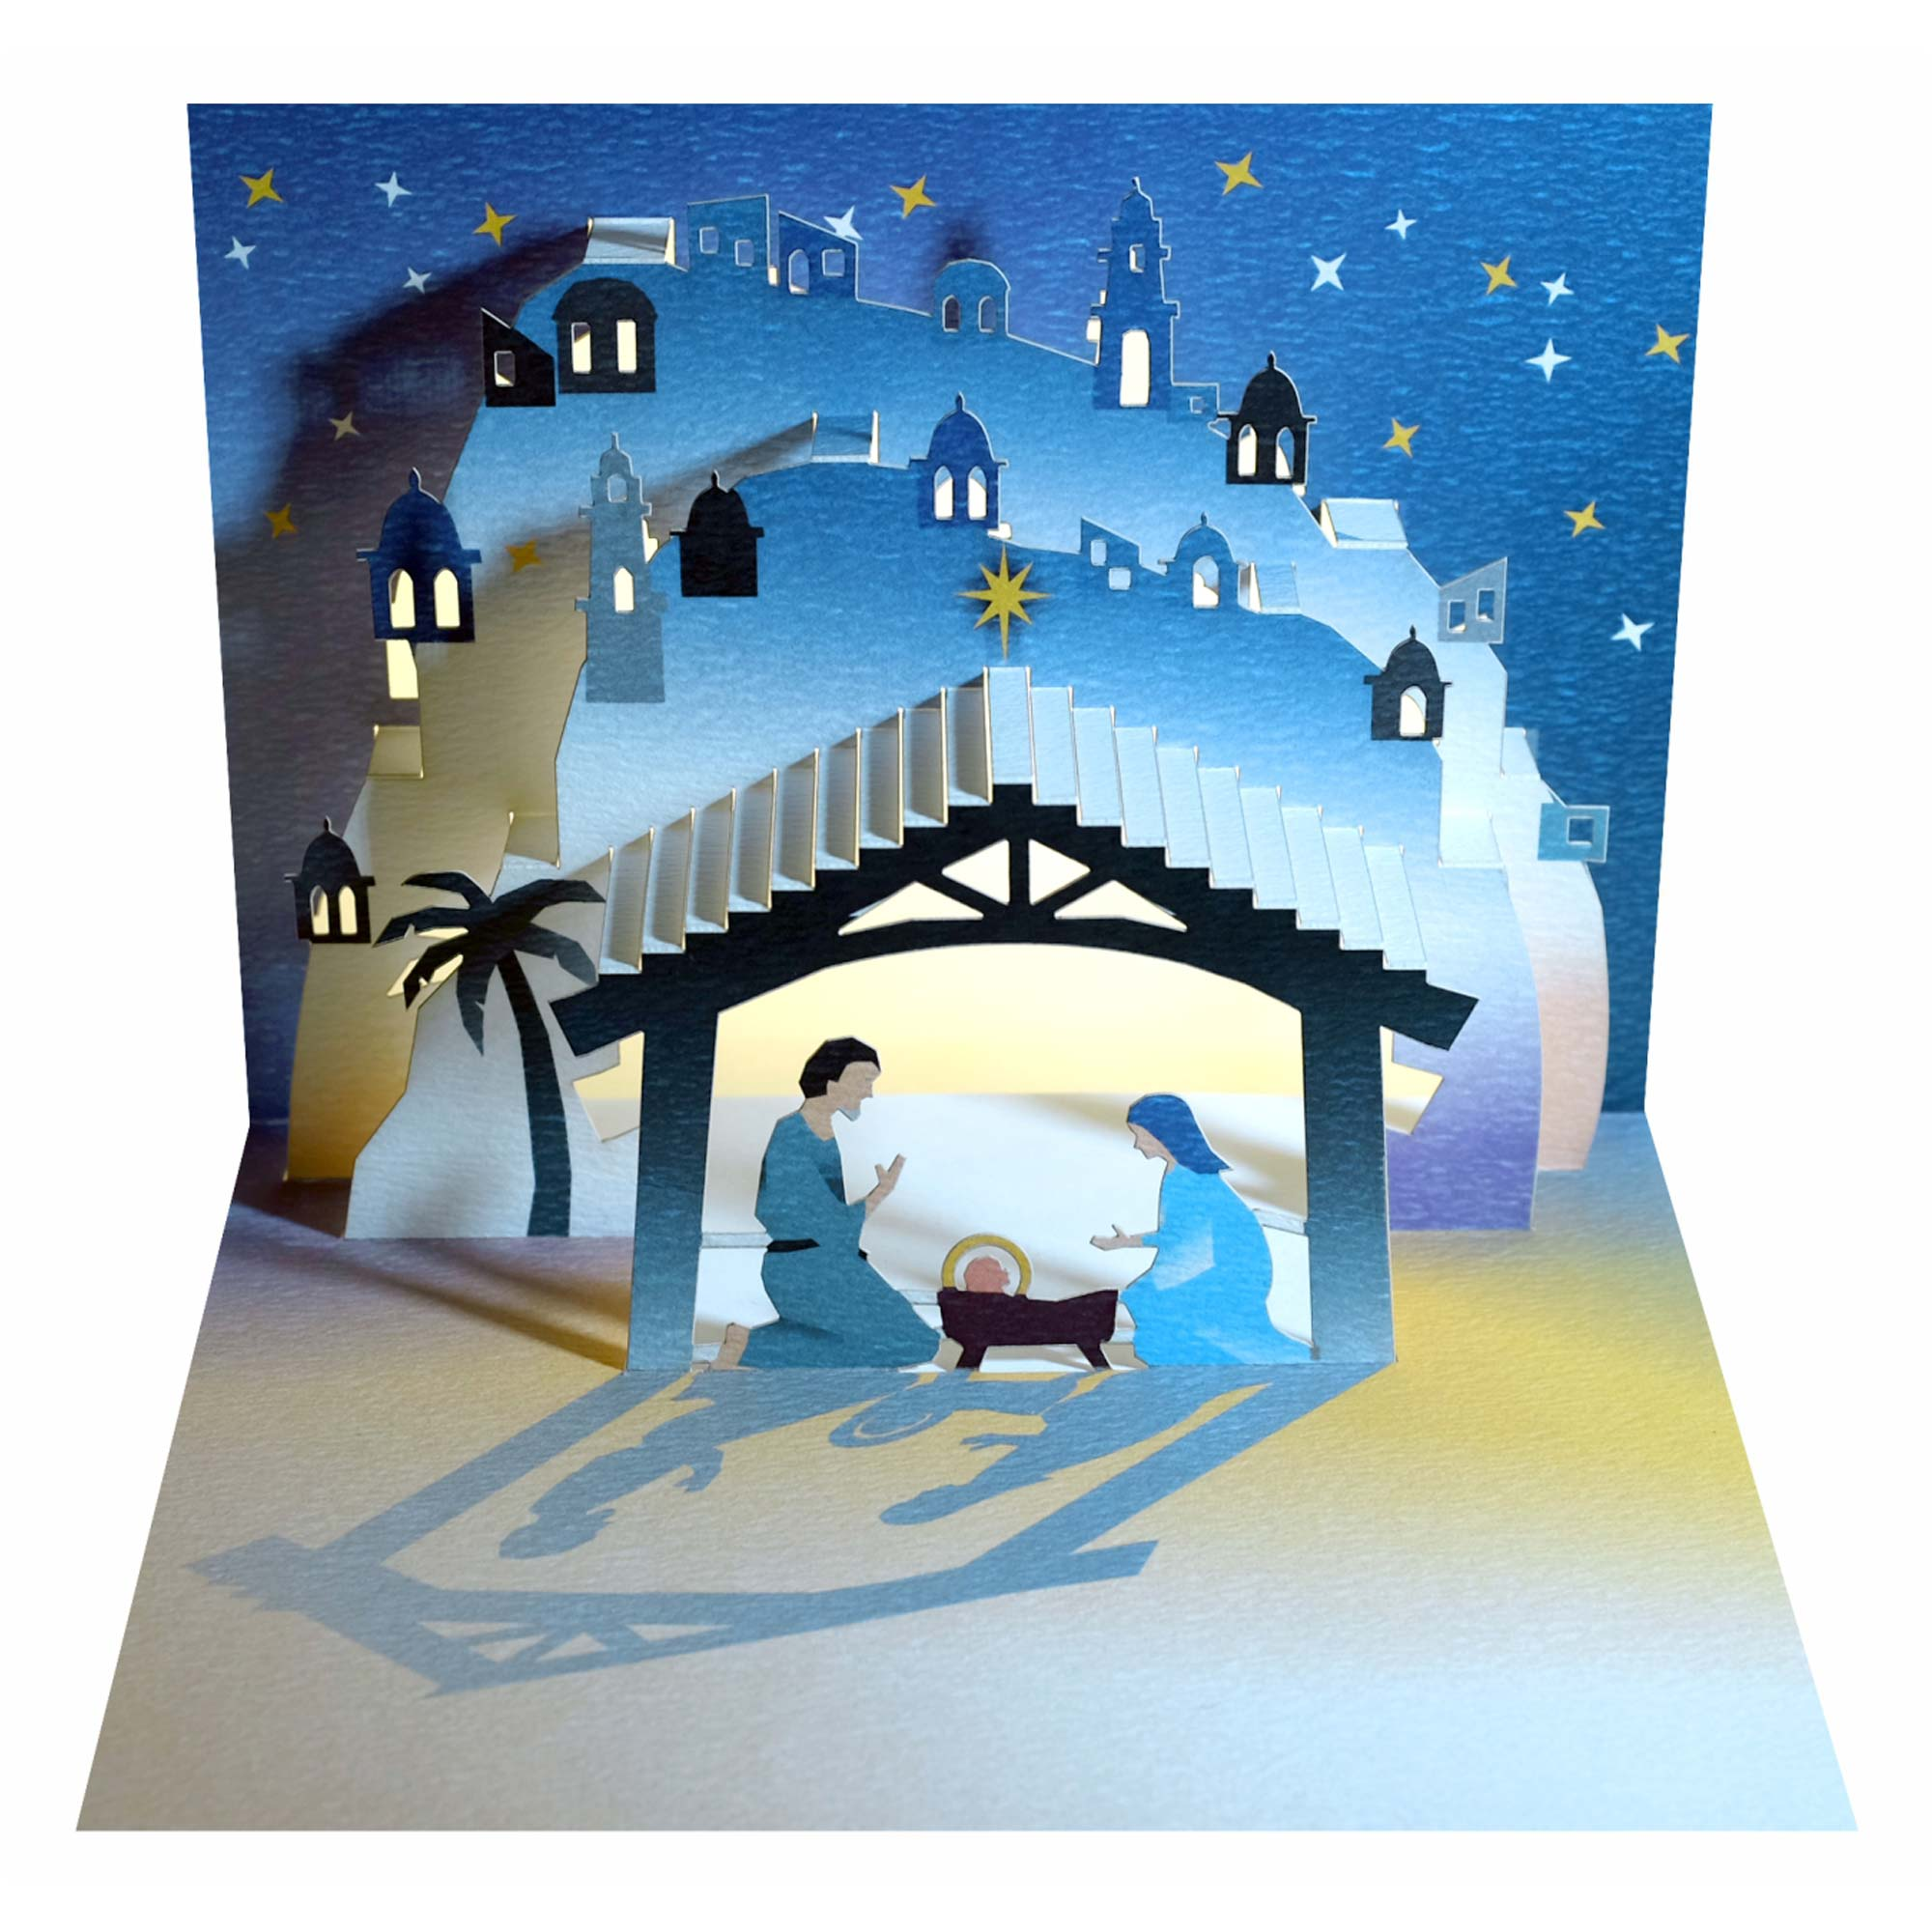 GE Feng Forever Christmas POP UP Greeting Cards - Nativity Manger